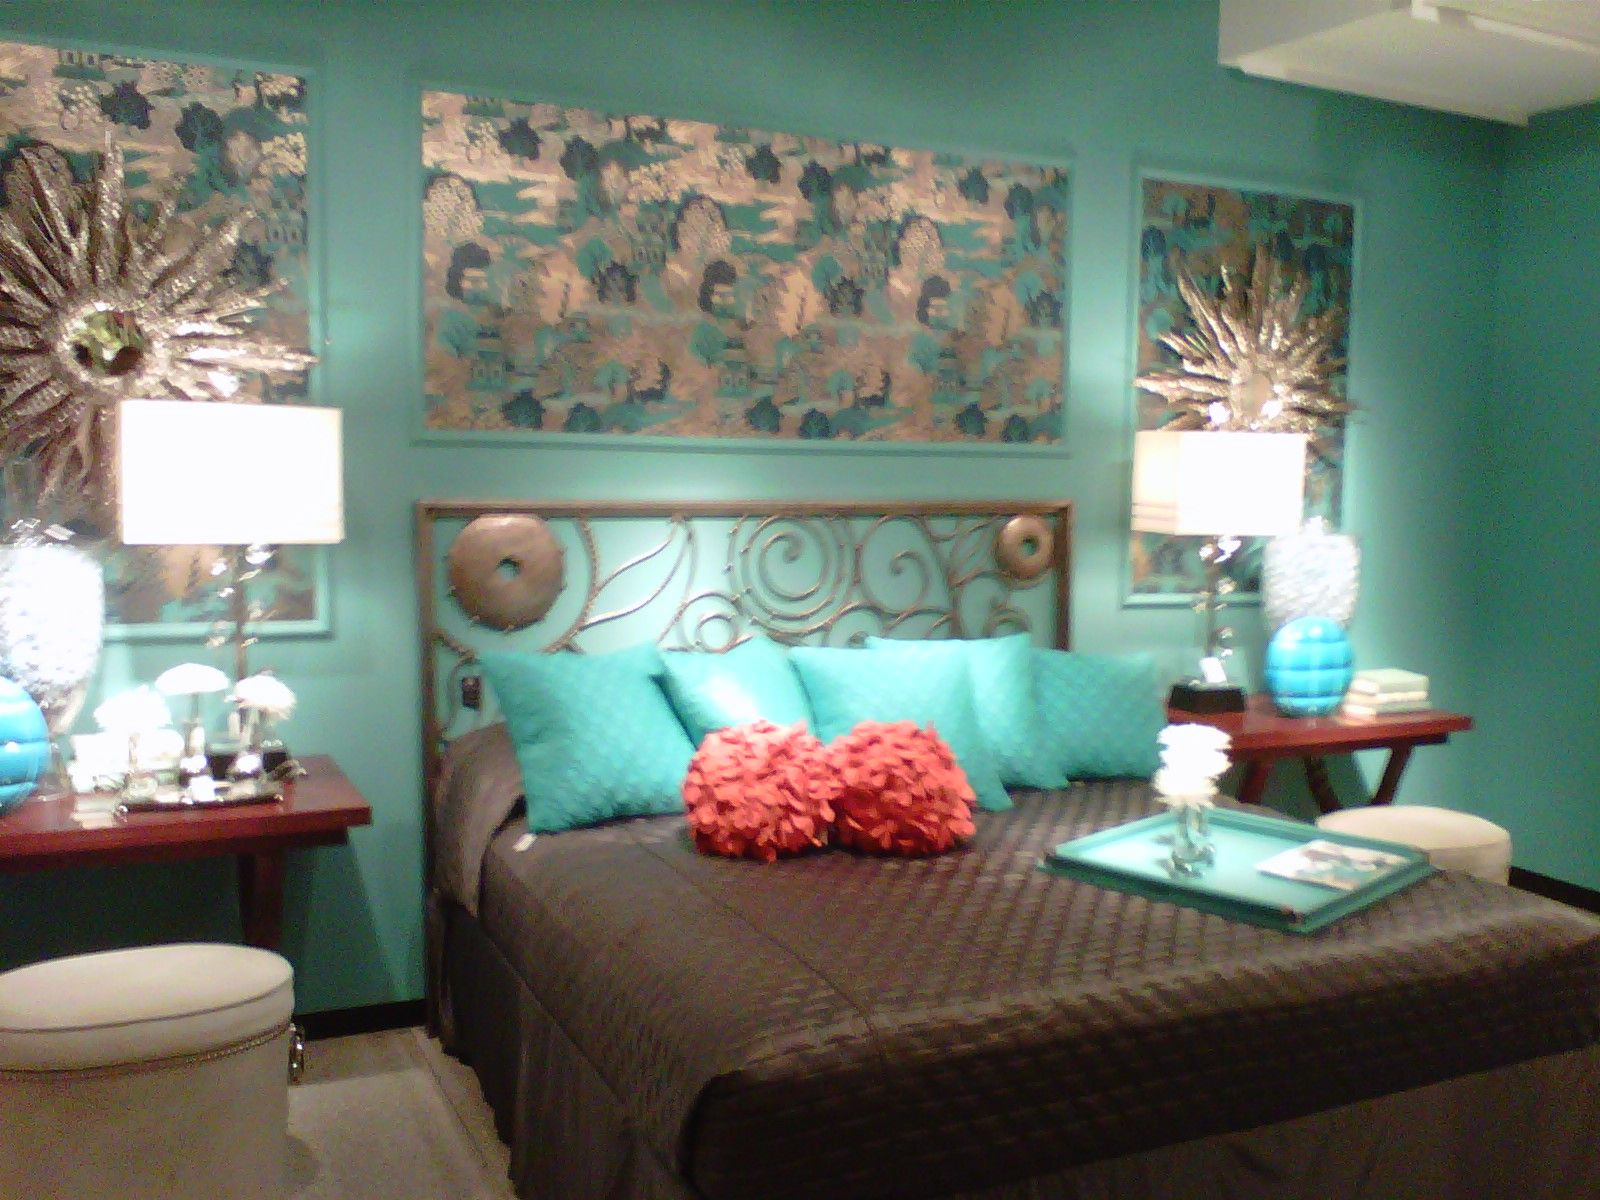 23 Turquoise Room Ideas for Newer Look of Your House | Room ...